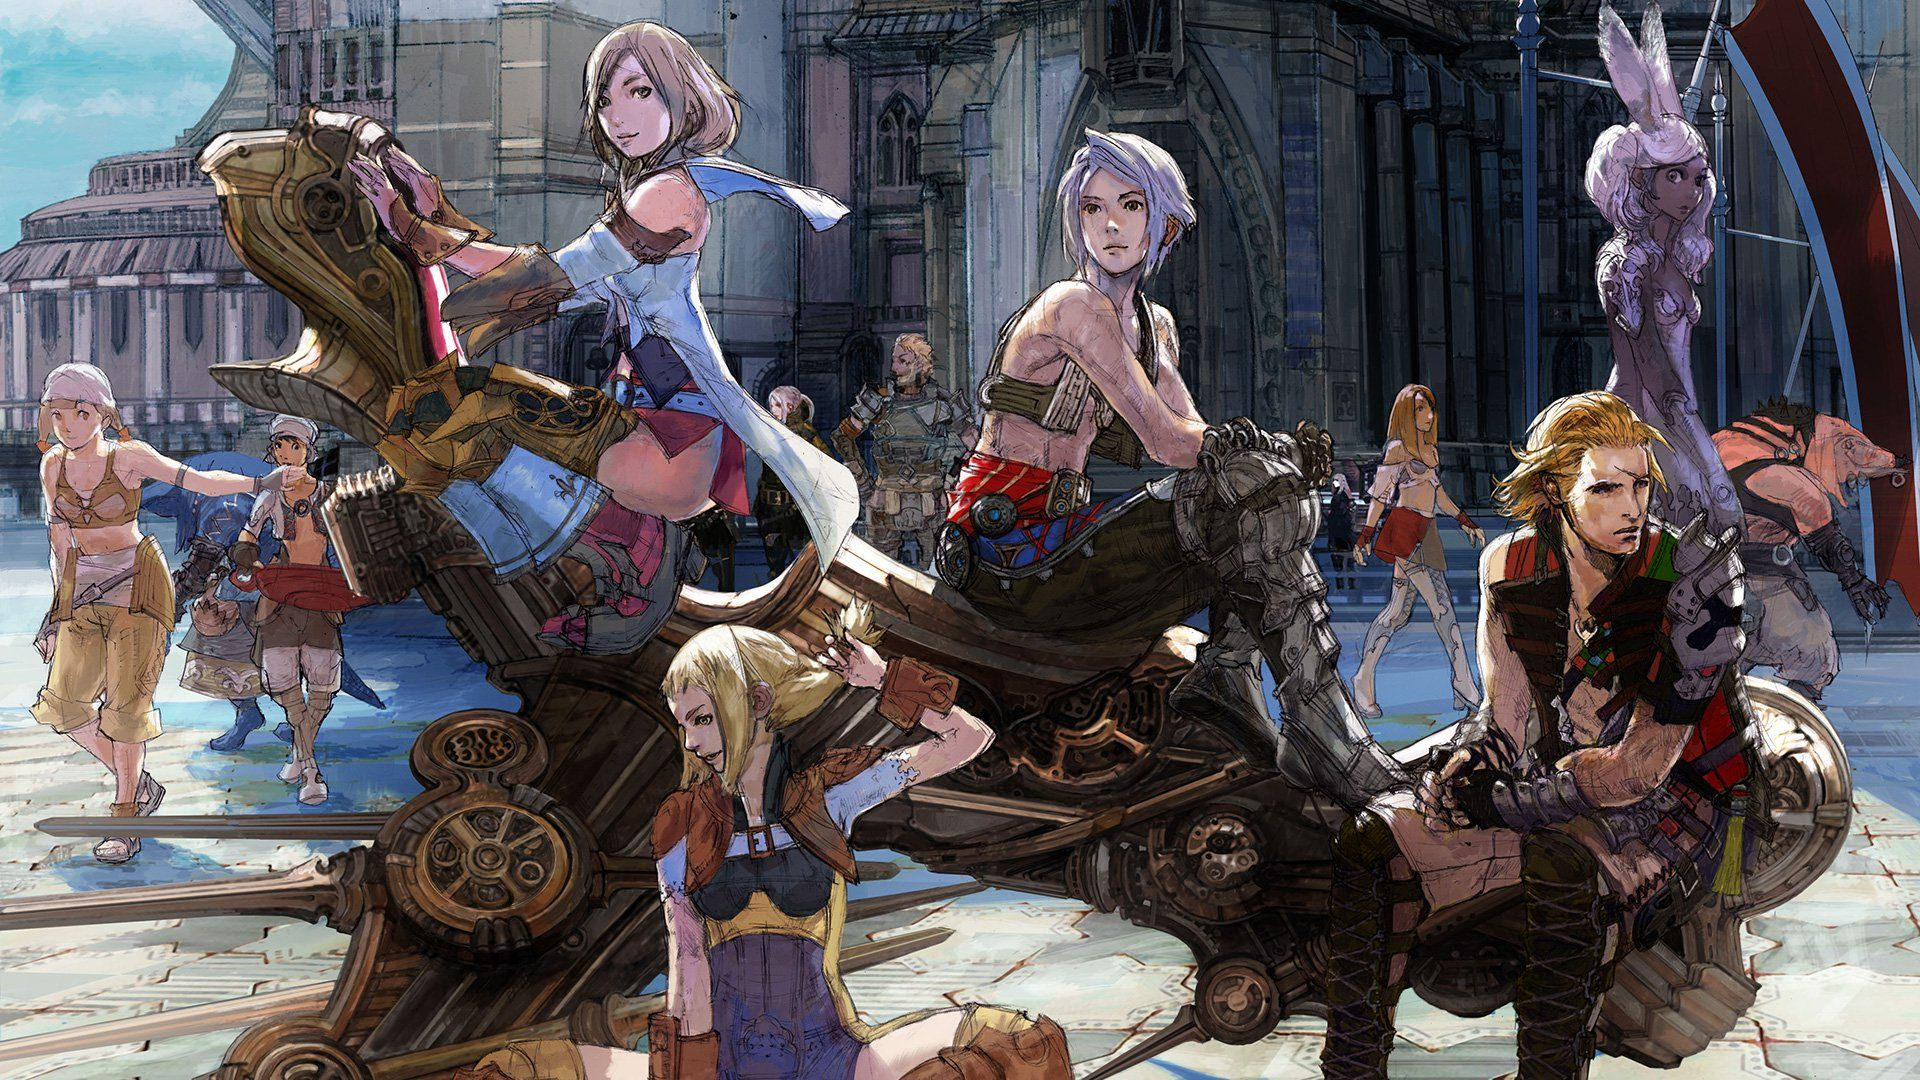 Pin By Blue Actarus On Video Game Artworks Final Fantasy Xii